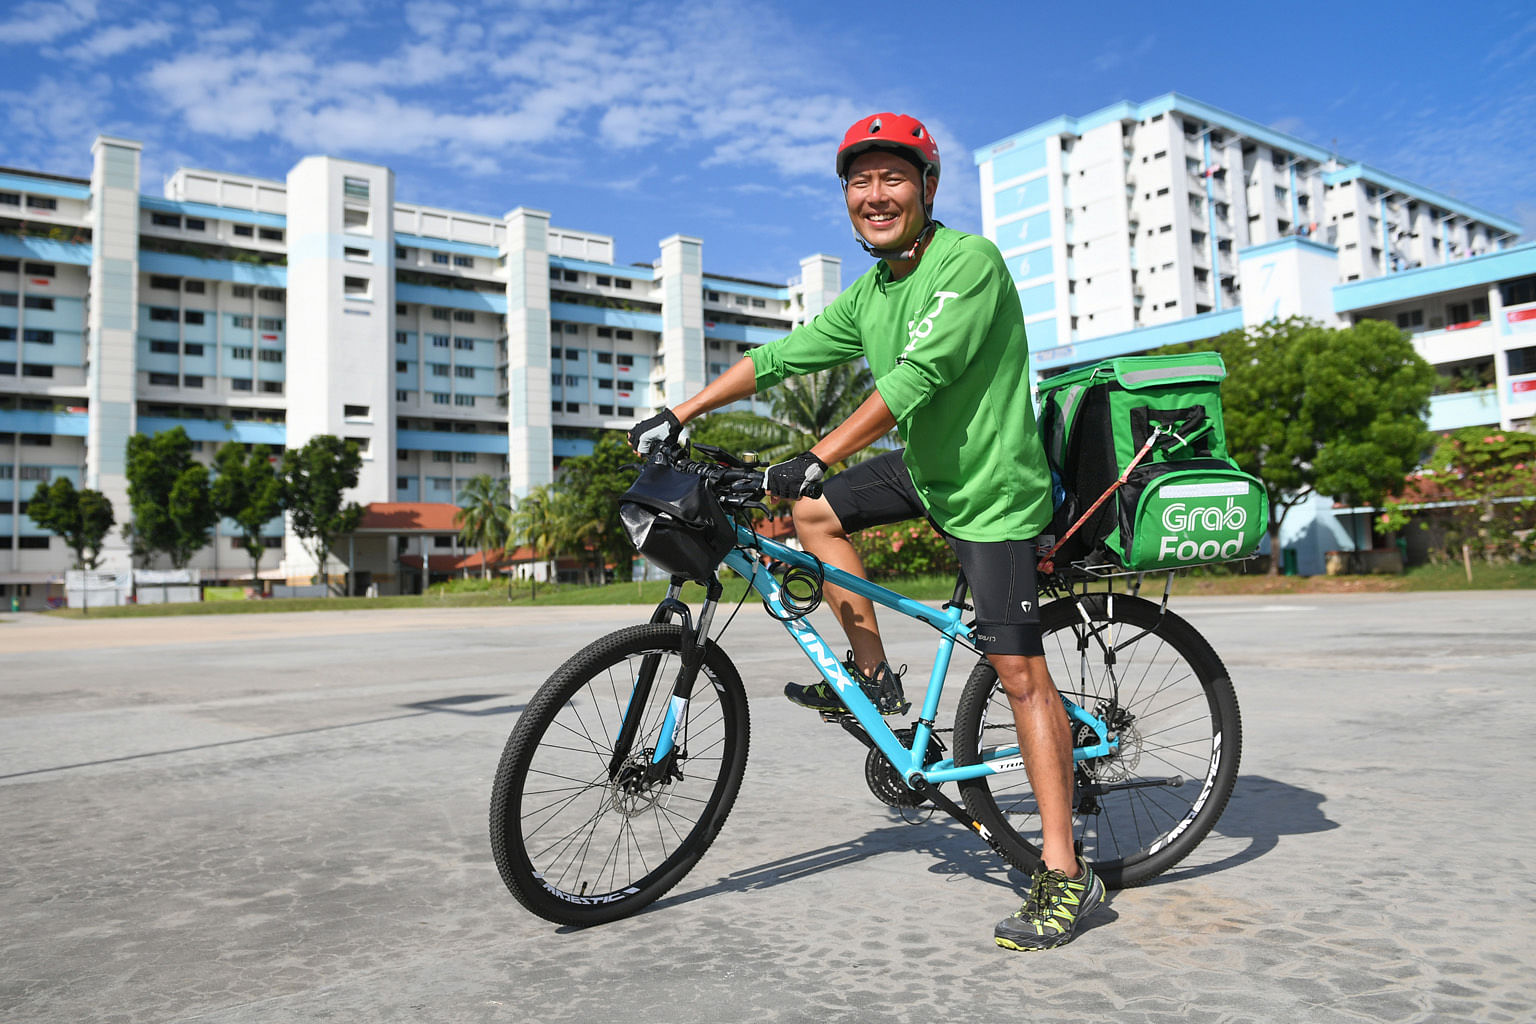 Mr Andy Yap, 40, who was laid off in February, now earns up to $2,000 in a good month, about a quarter of what he used to earn in his former role. His advice for others facing tough times is to be positive.